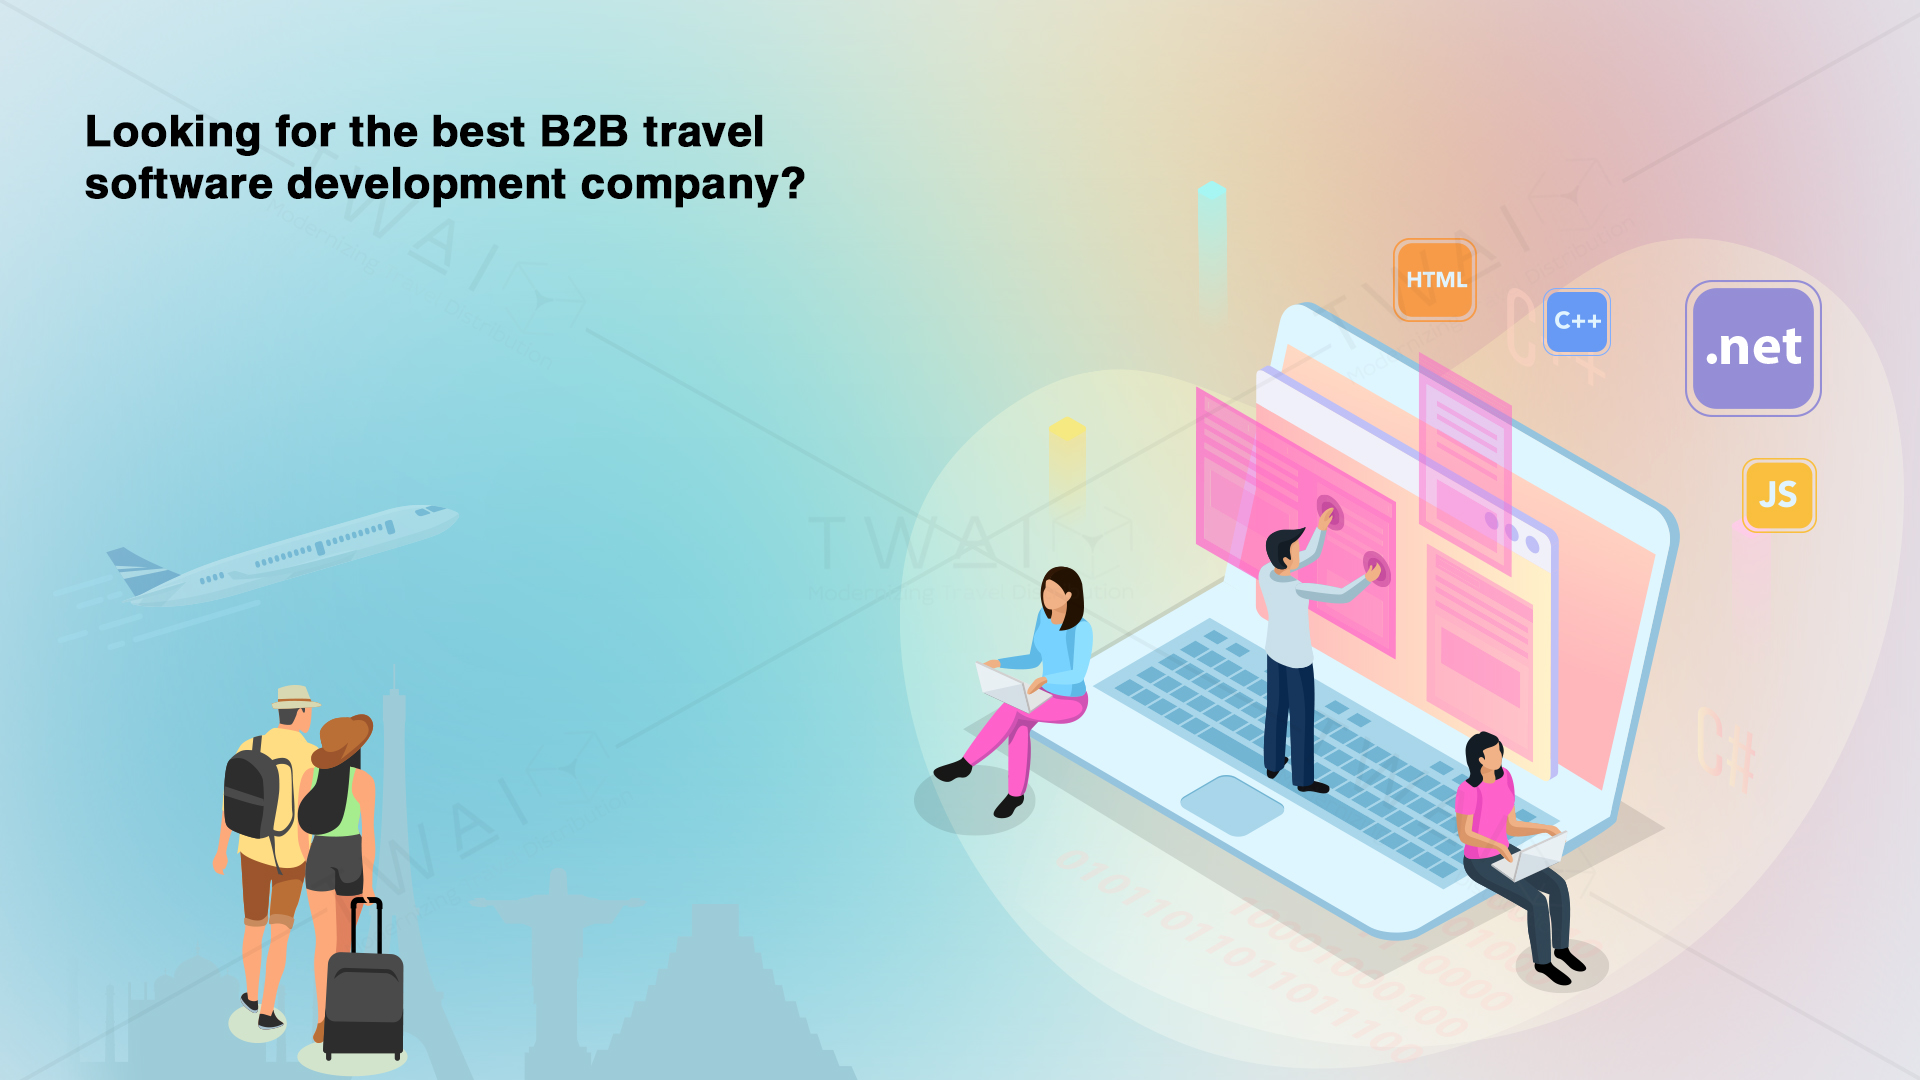 Here's how B2B travel software development company favors you